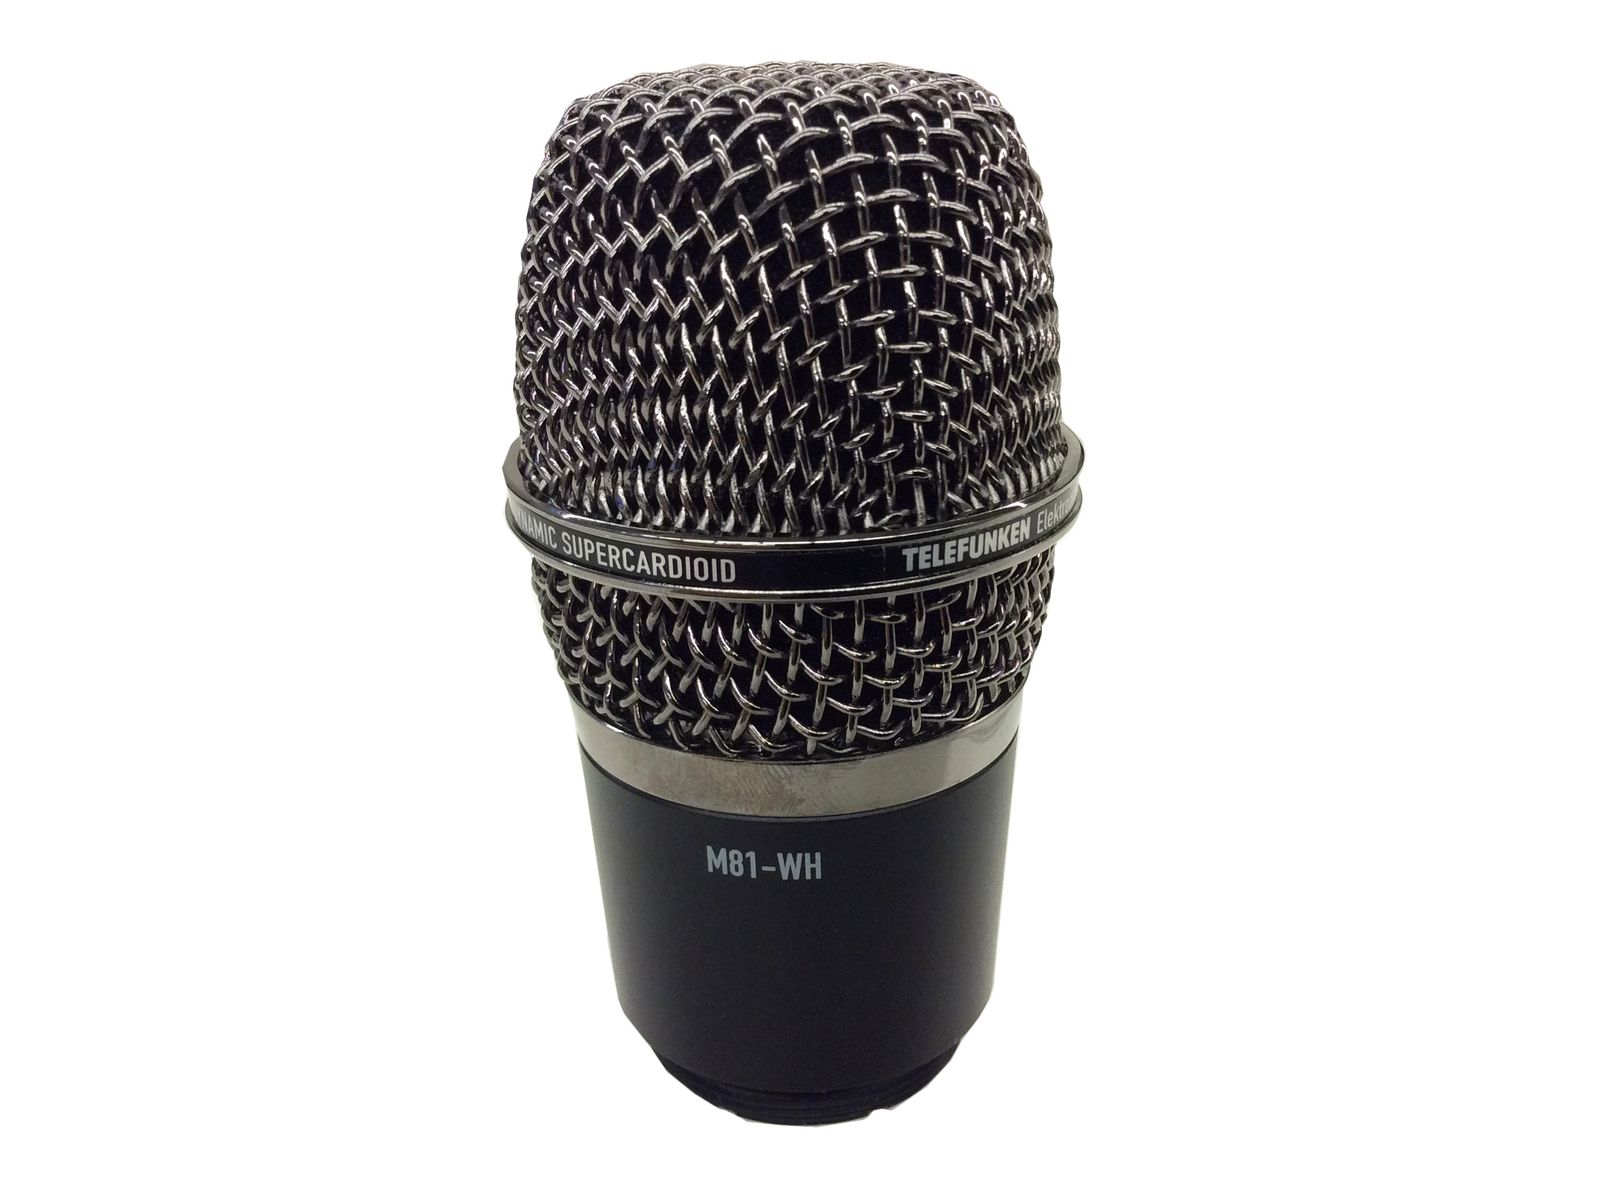 Telefunken M81-WH Wireless Capsule Head is available at Hollywood Sound Systems